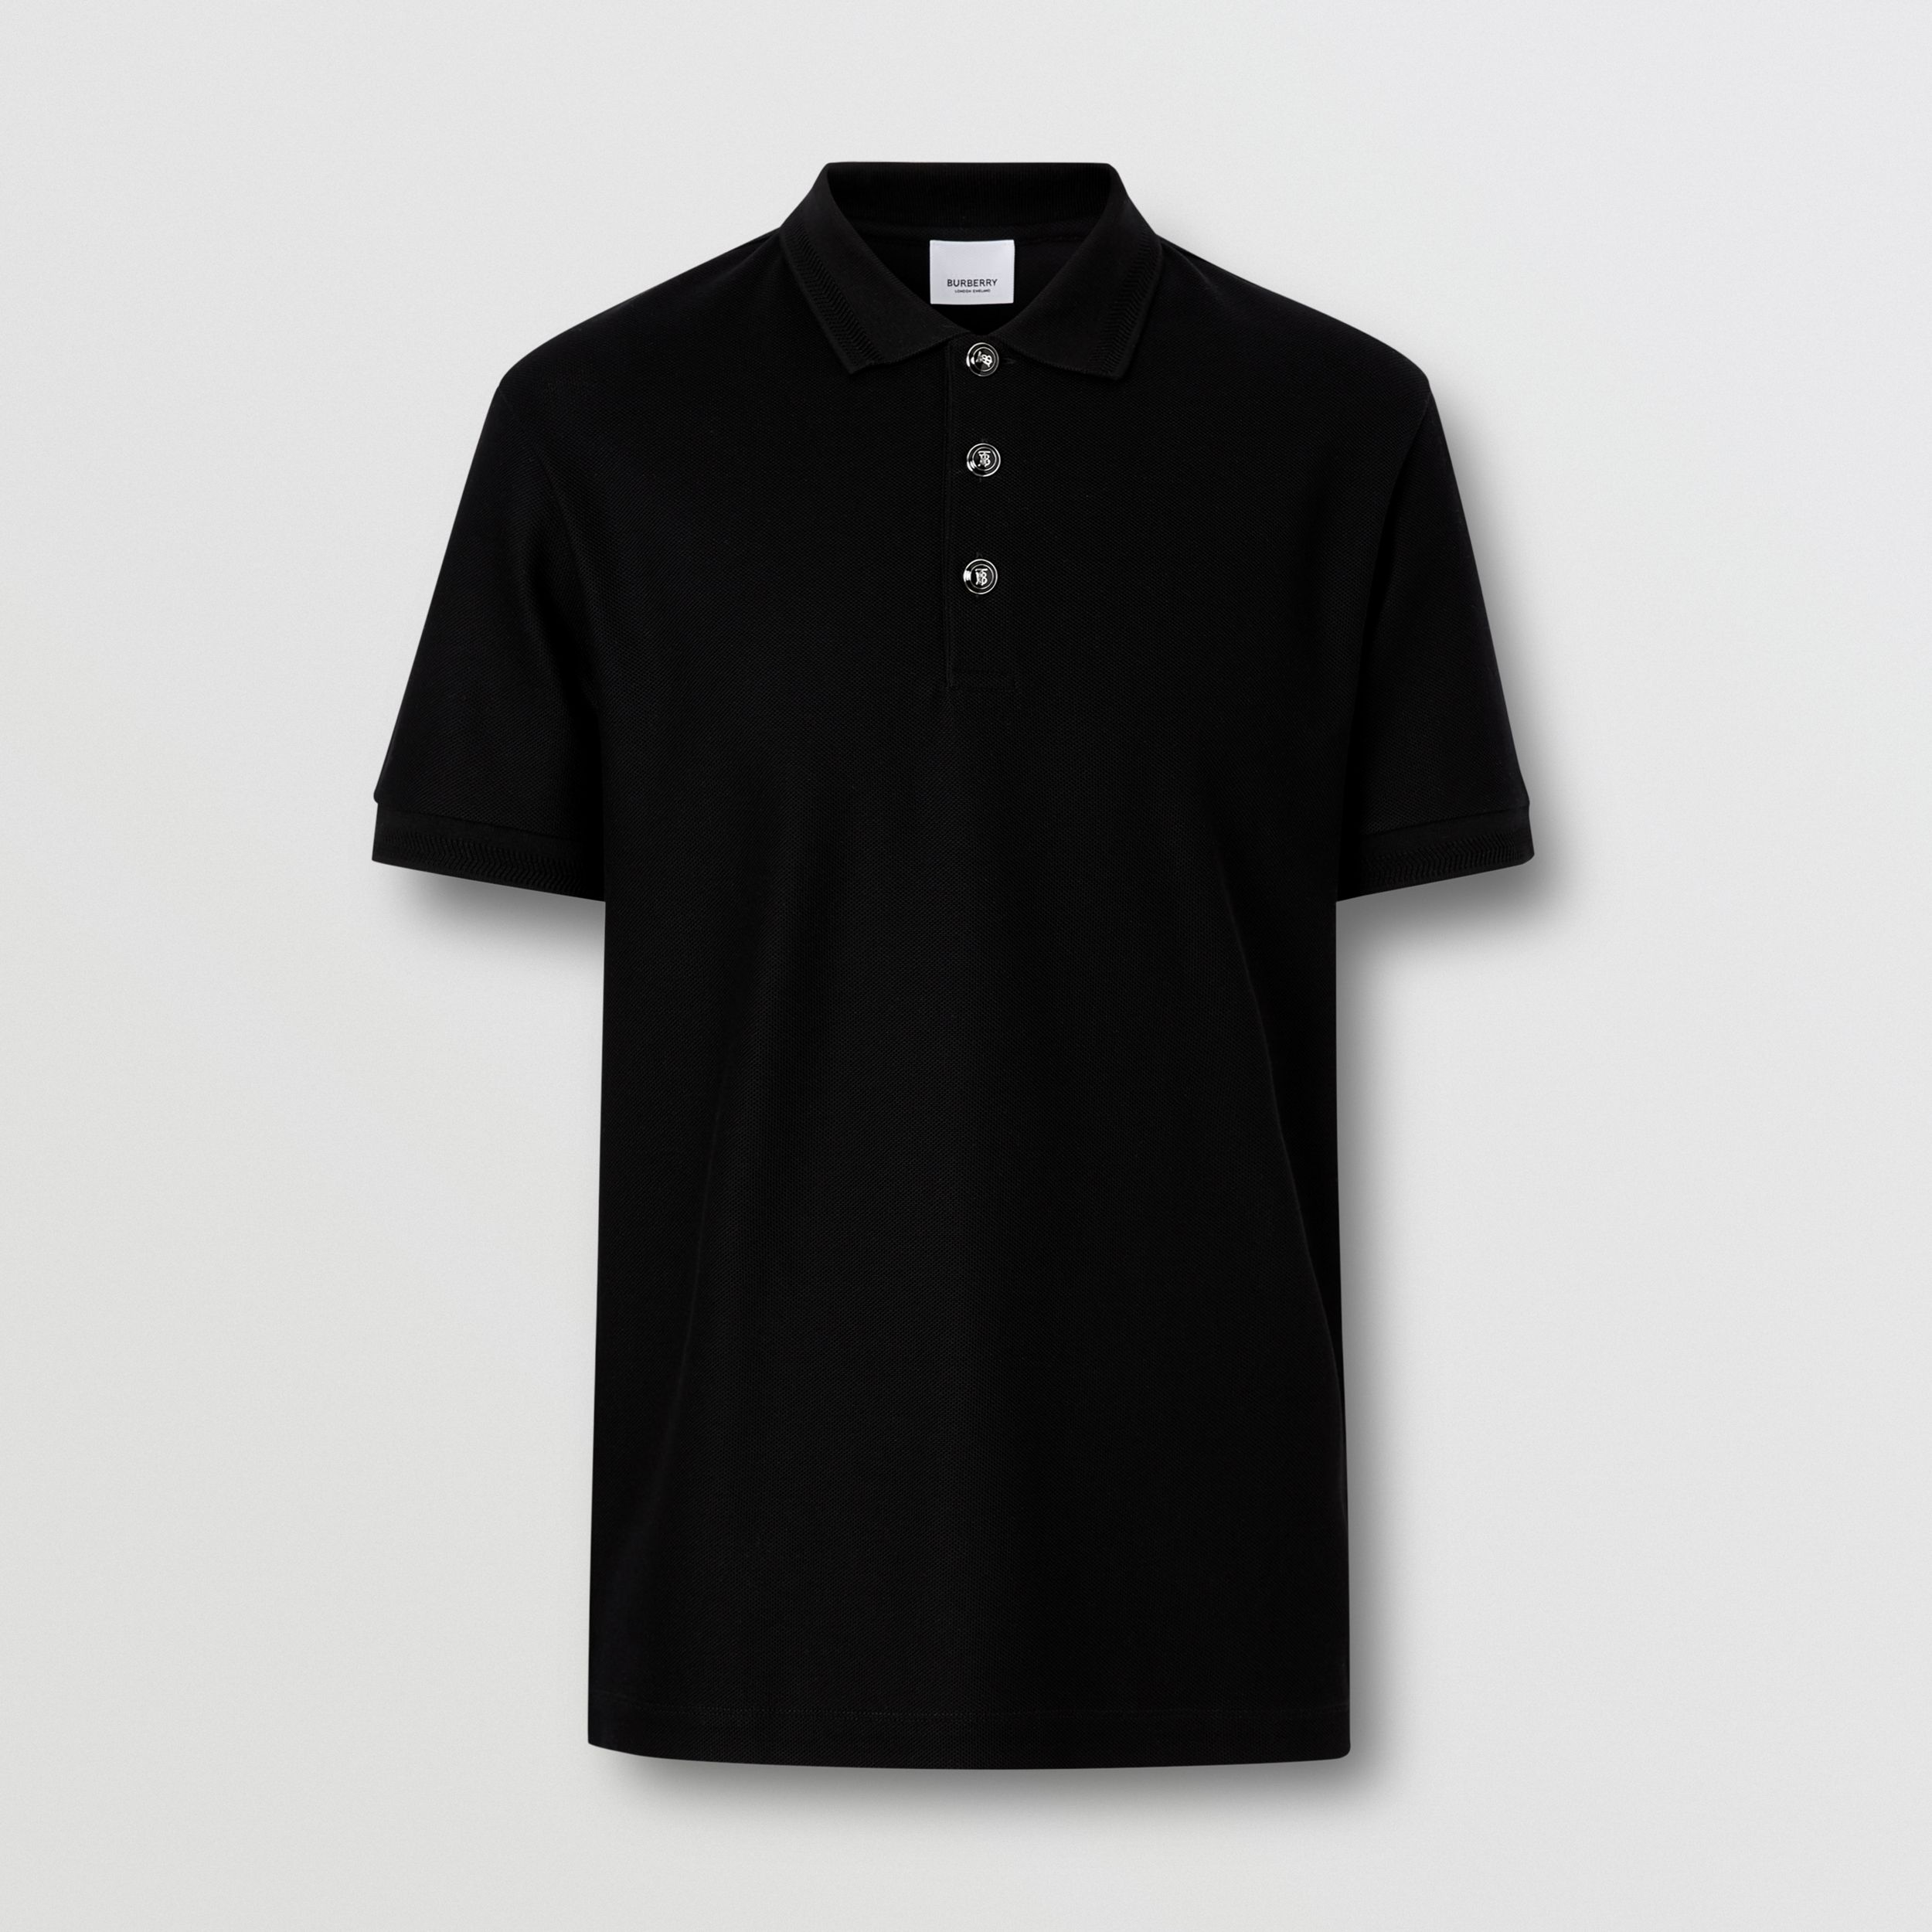 Cotton Piqué Polo Shirt in Black - Men | Burberry - 4